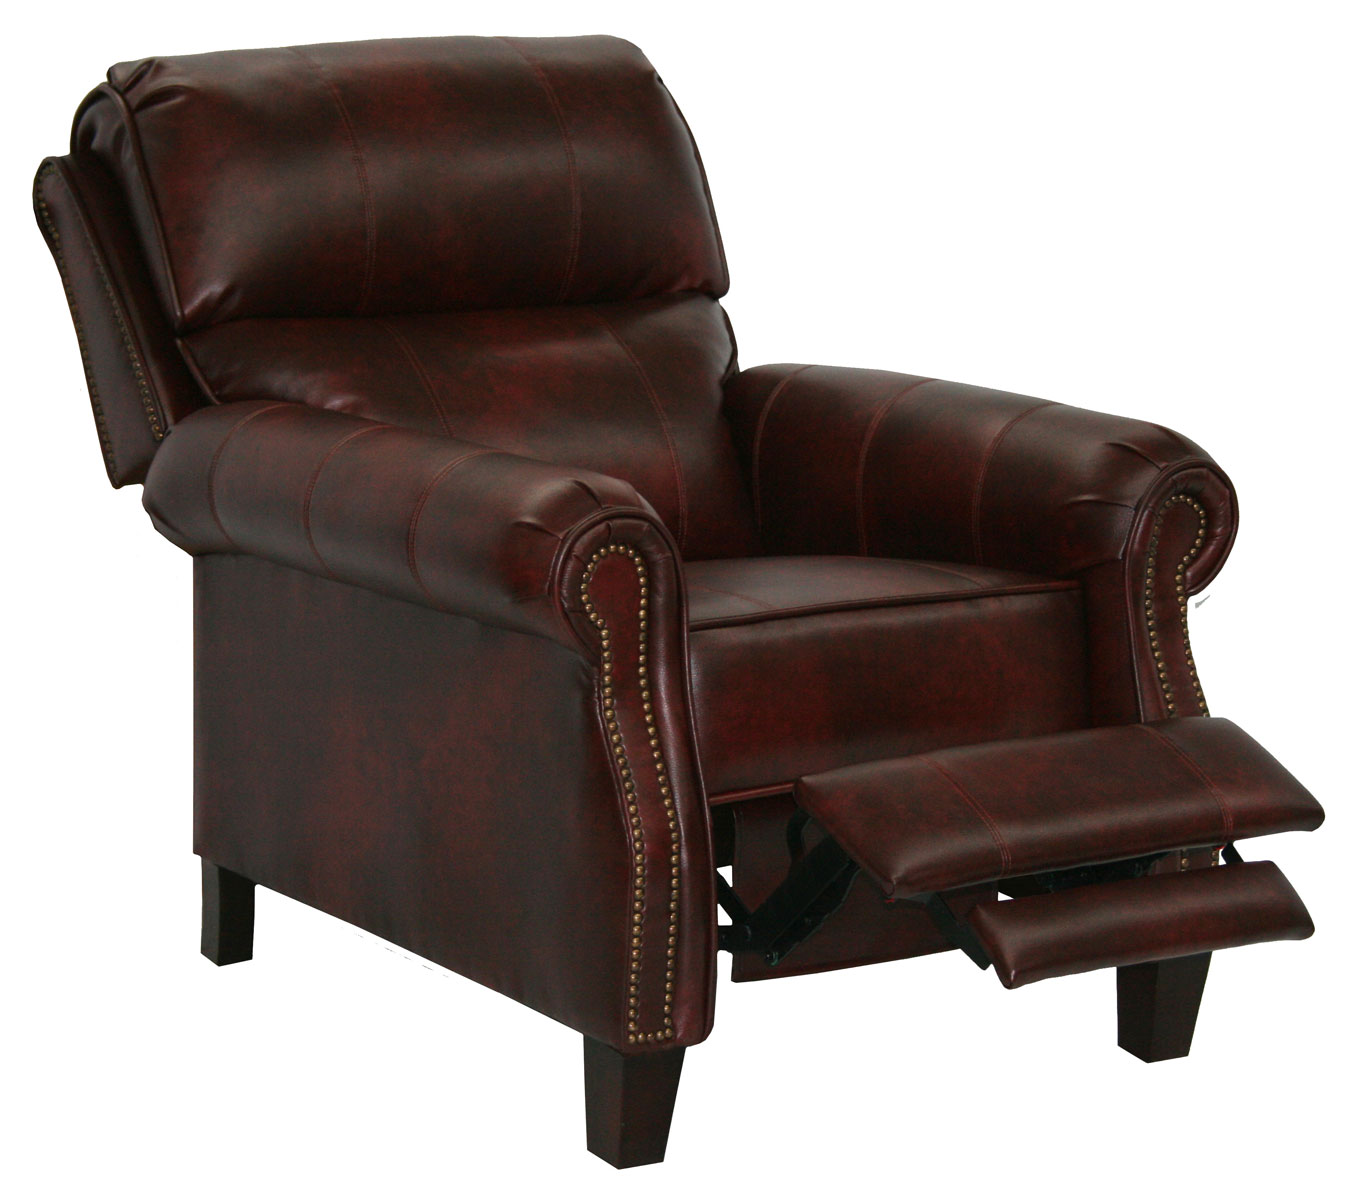 Catnapper Frazier Bonded Leather Reclining Chair With